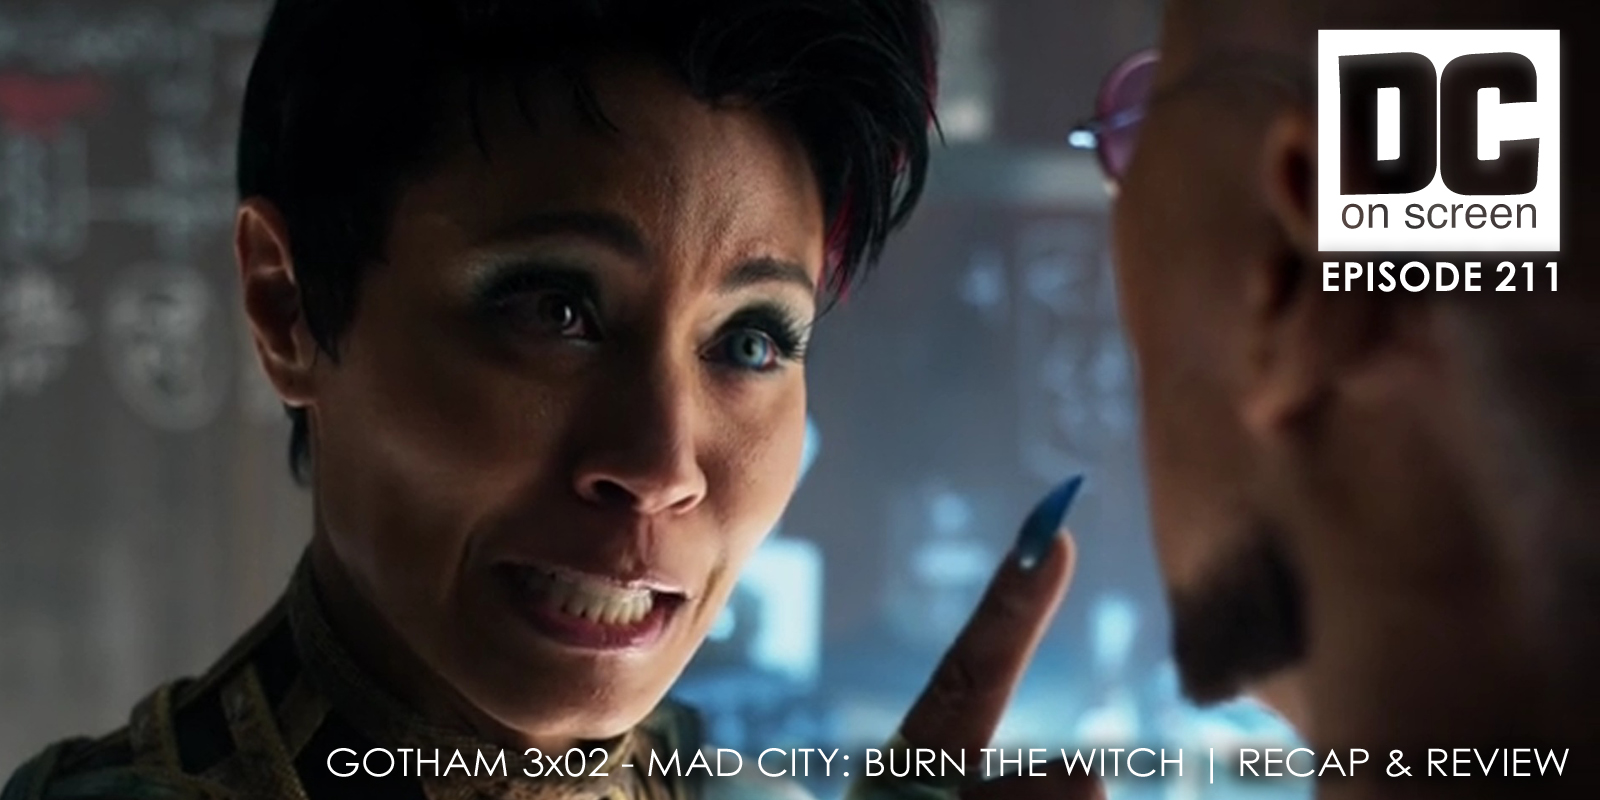 DC on SCREEN Podcast: Gotham 3x02 - Mad City: Burn the Witch   Recap